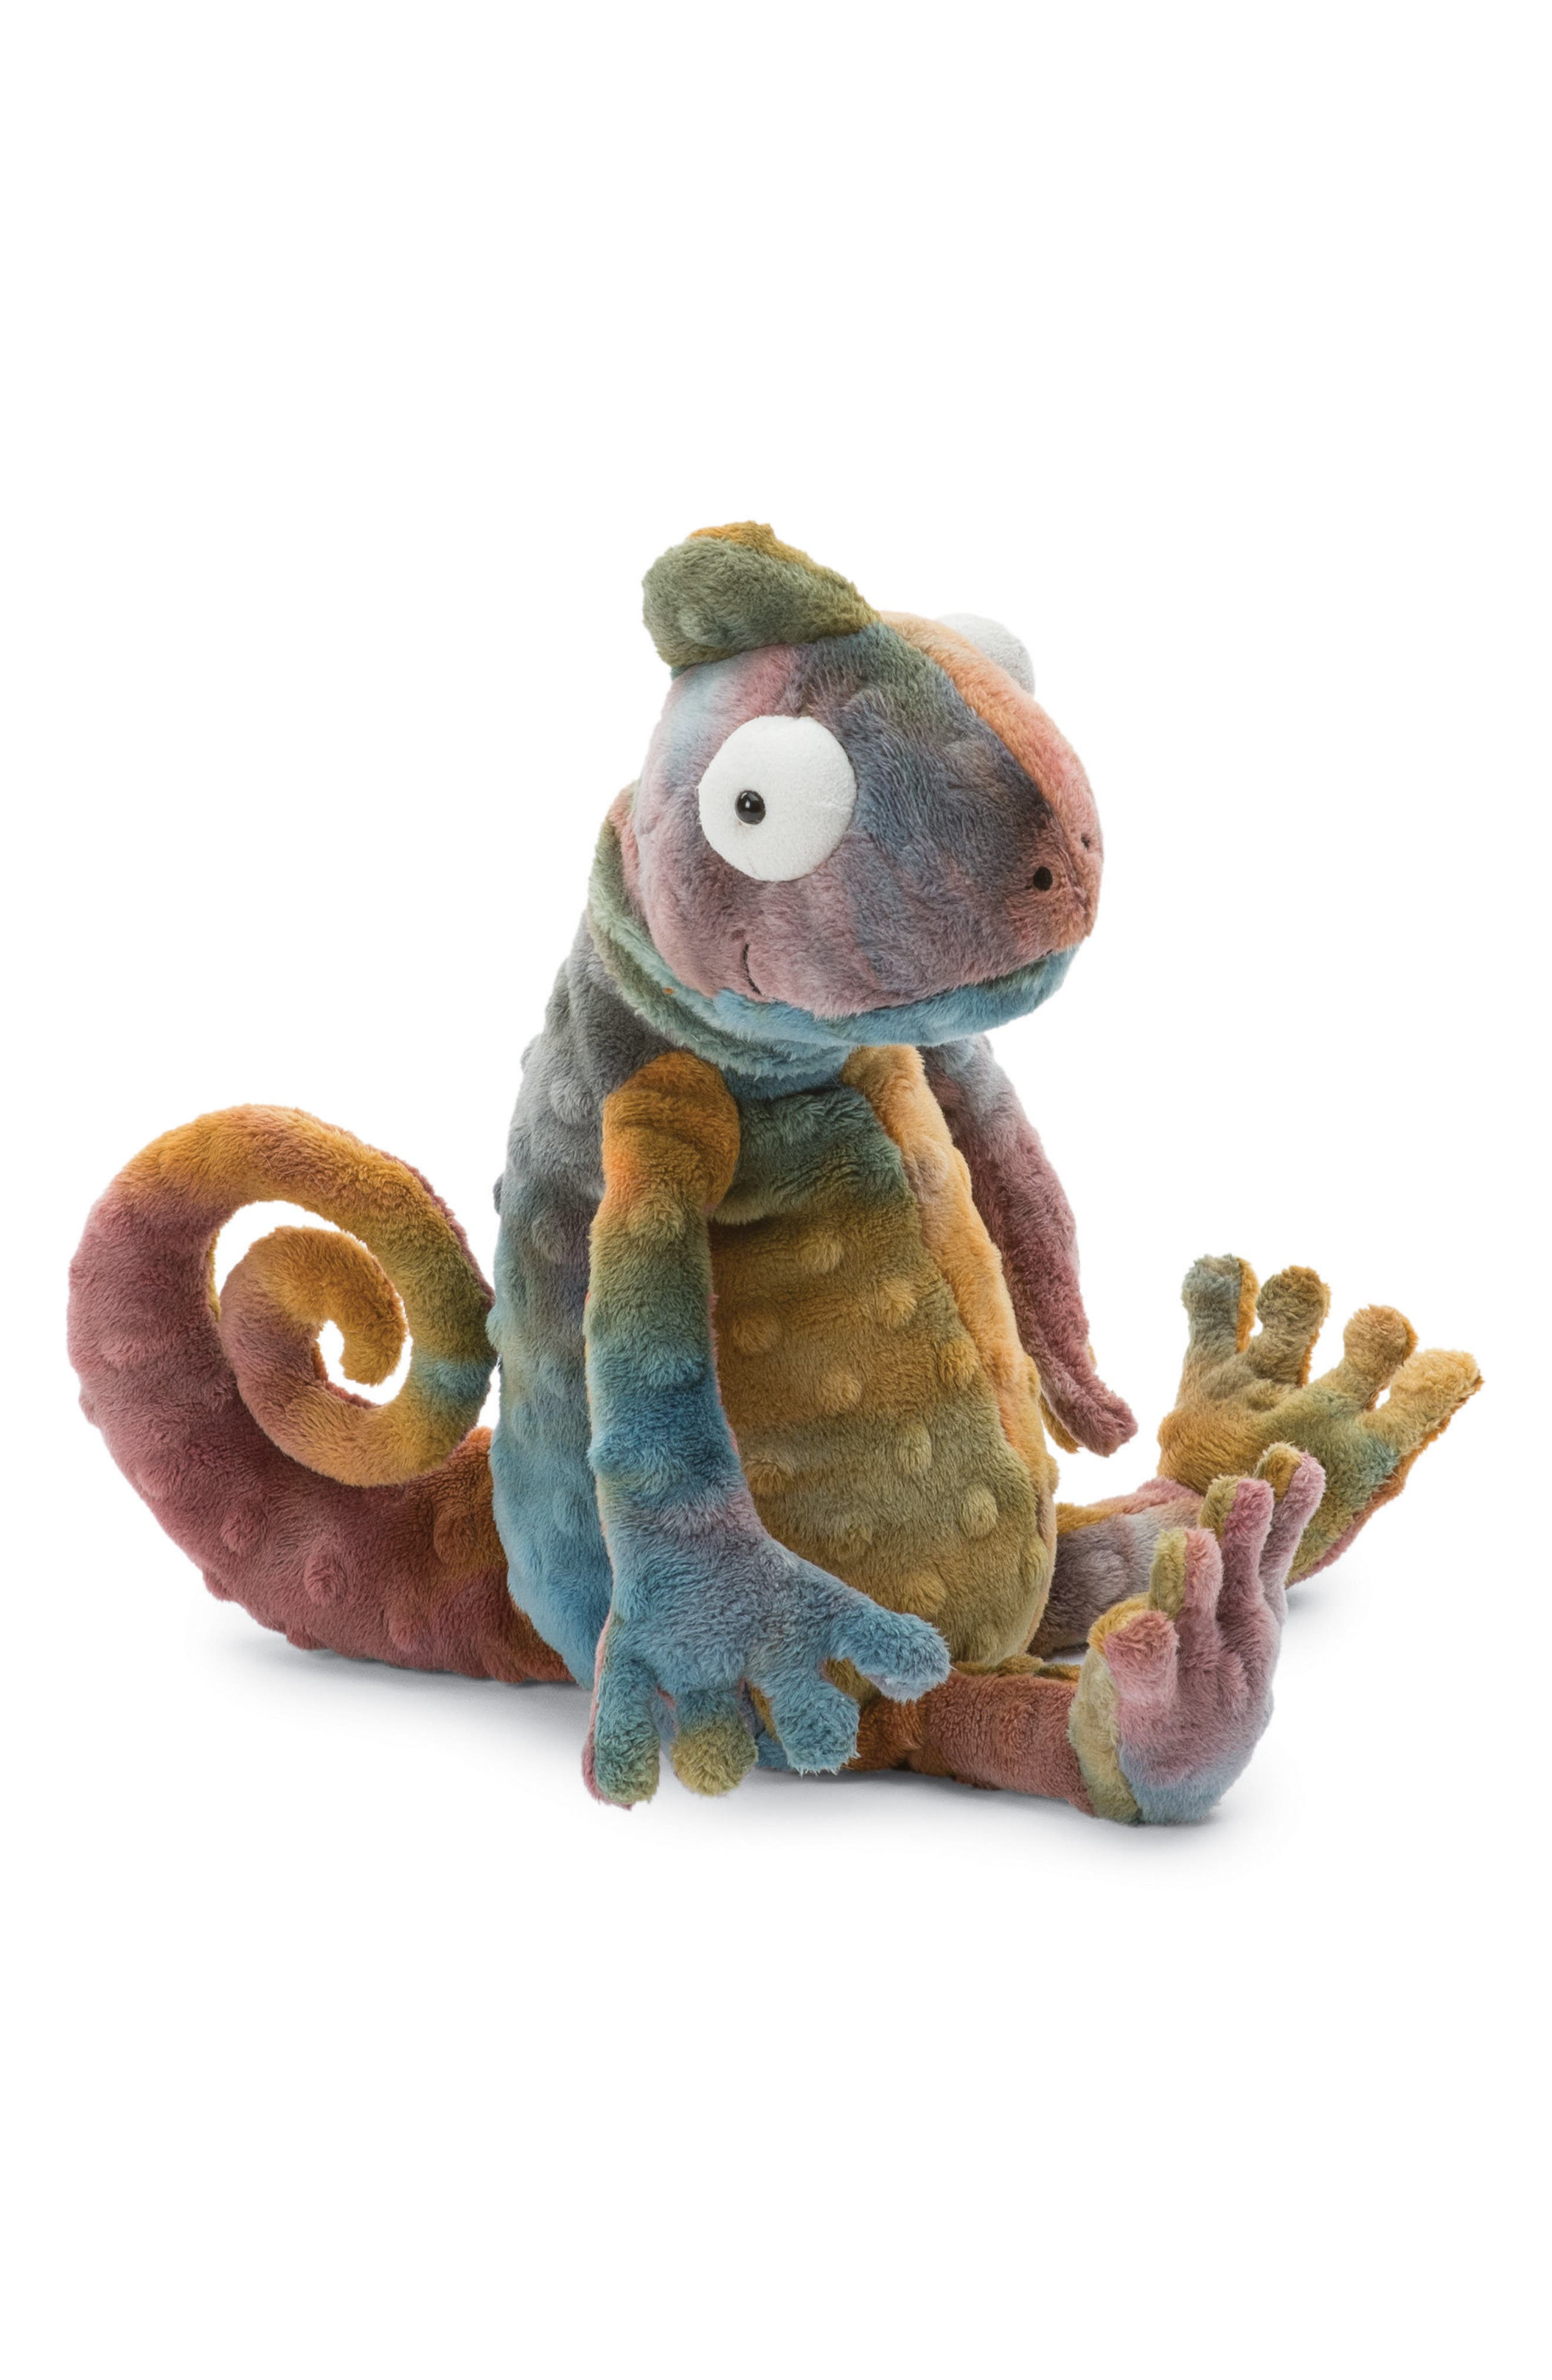 Alternate Image 1 Selected - Jellycat Colin Chameleon Stuffed Animal (Kids)